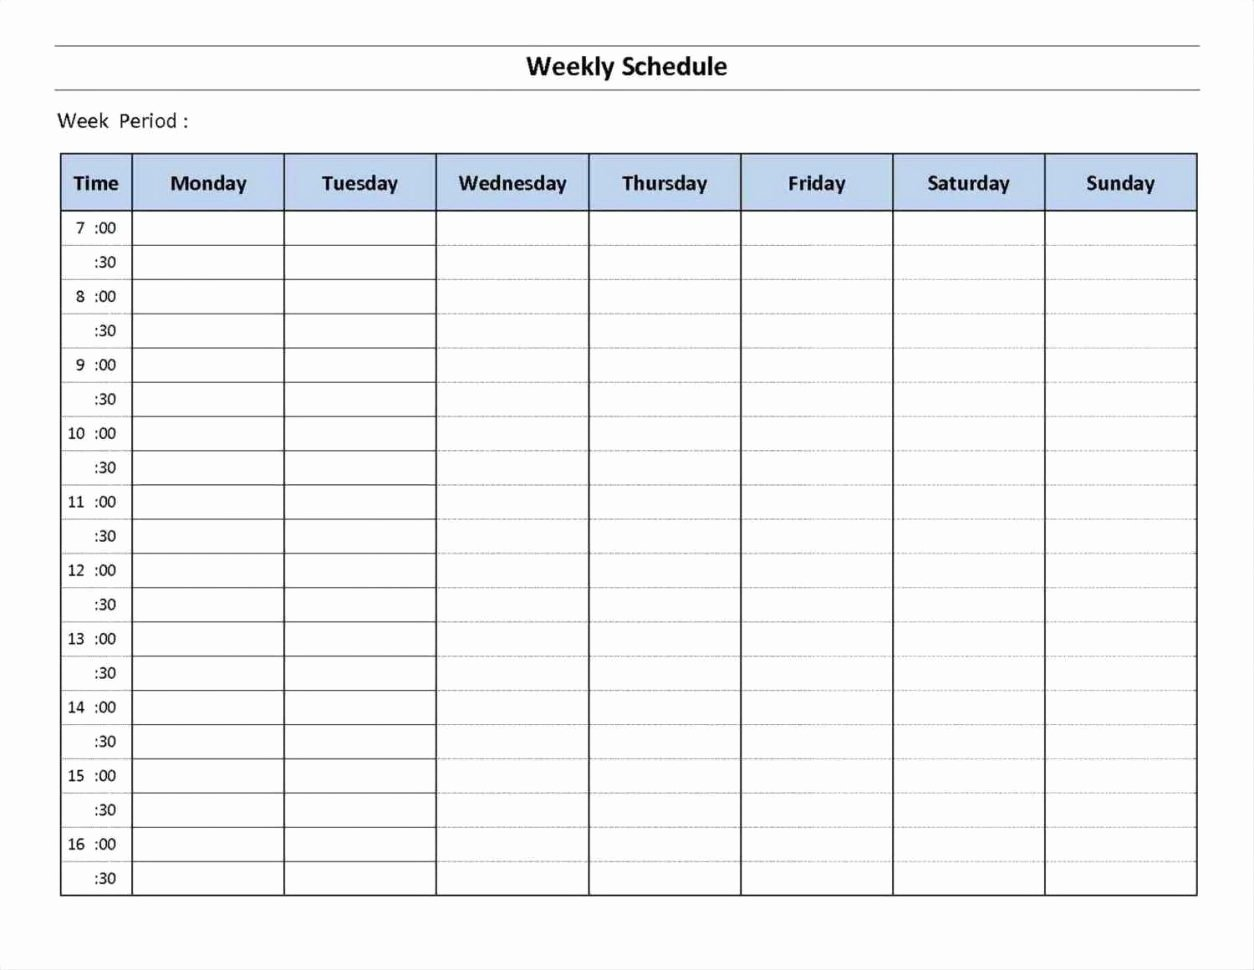 Employee Shift Schedule Template Excel Inspirational Employee Shift Schedule Template Excel Example Of